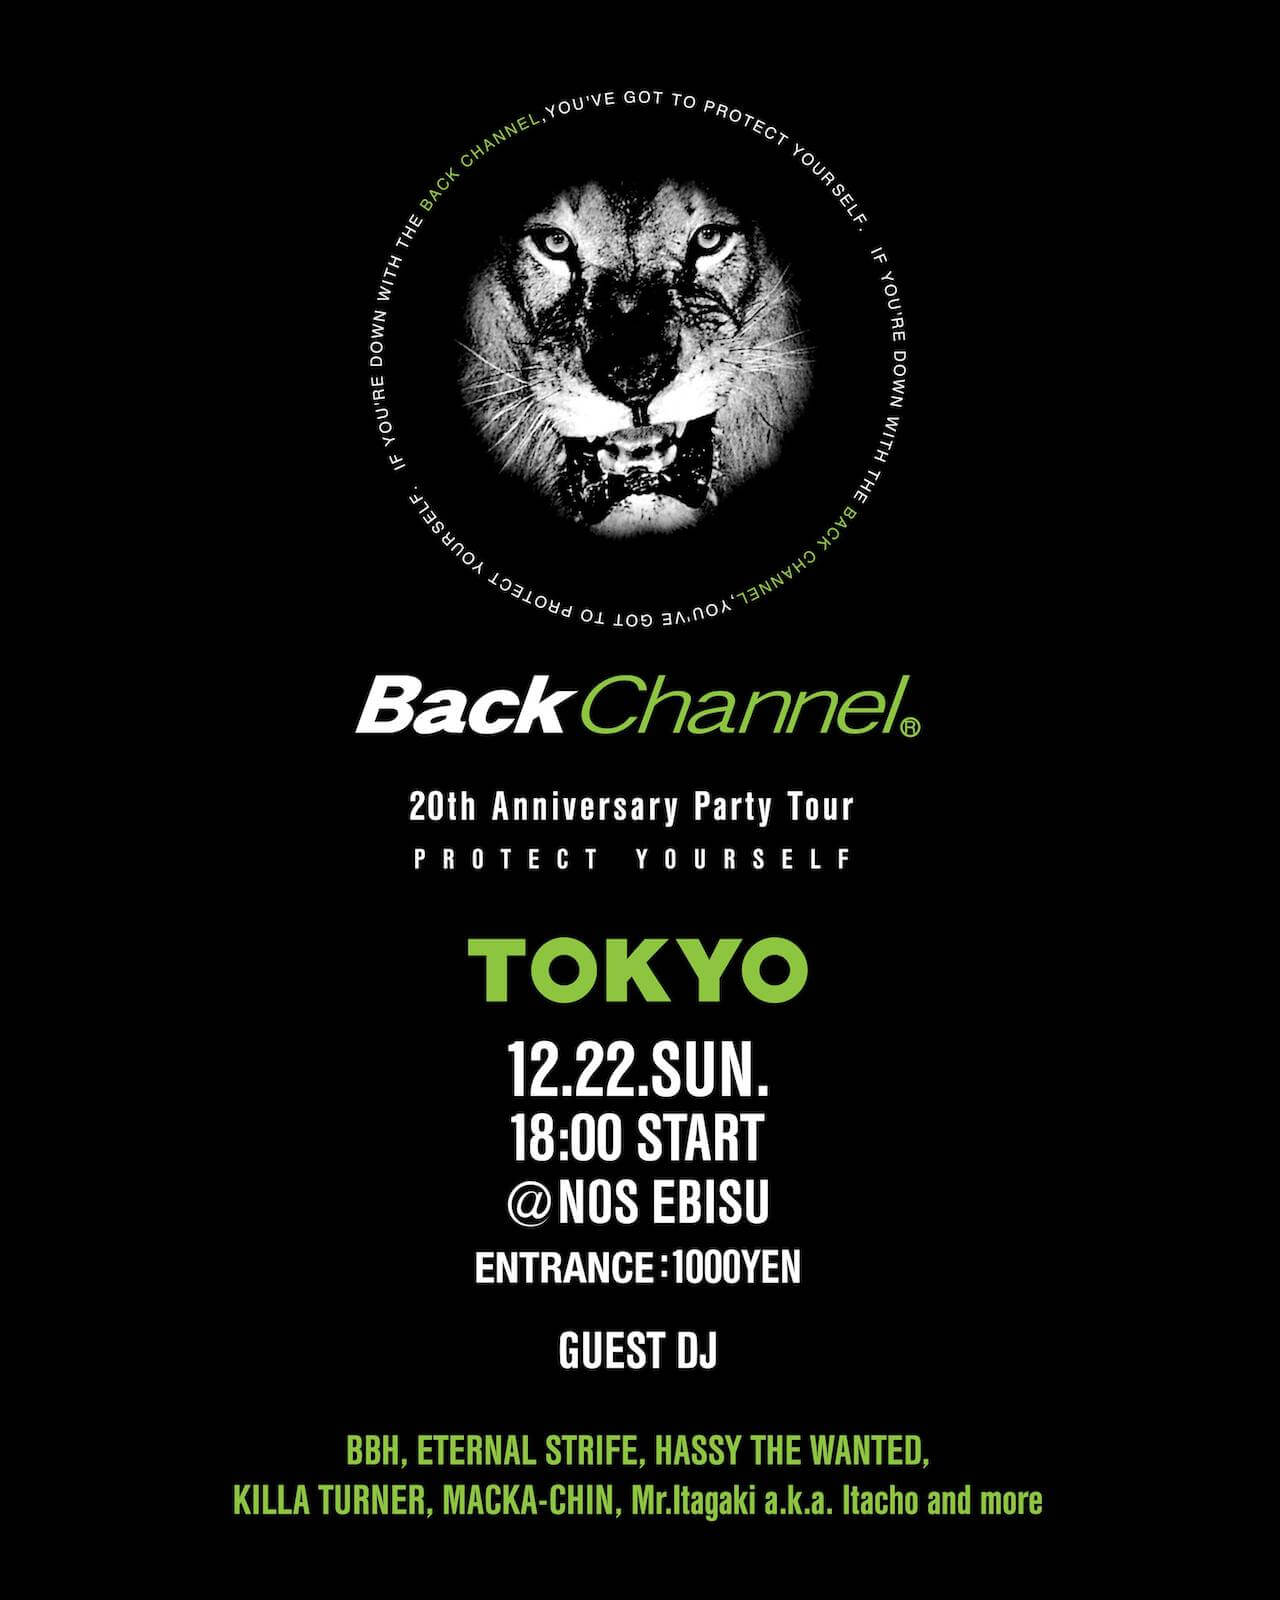 「BACK CHANNEL」20周年ツアーファイナルが東京で開催|KILLA TURNERやMACKA-CHIN、BBH、ETERNAL STRIFEらが登場 music191217-backchannel